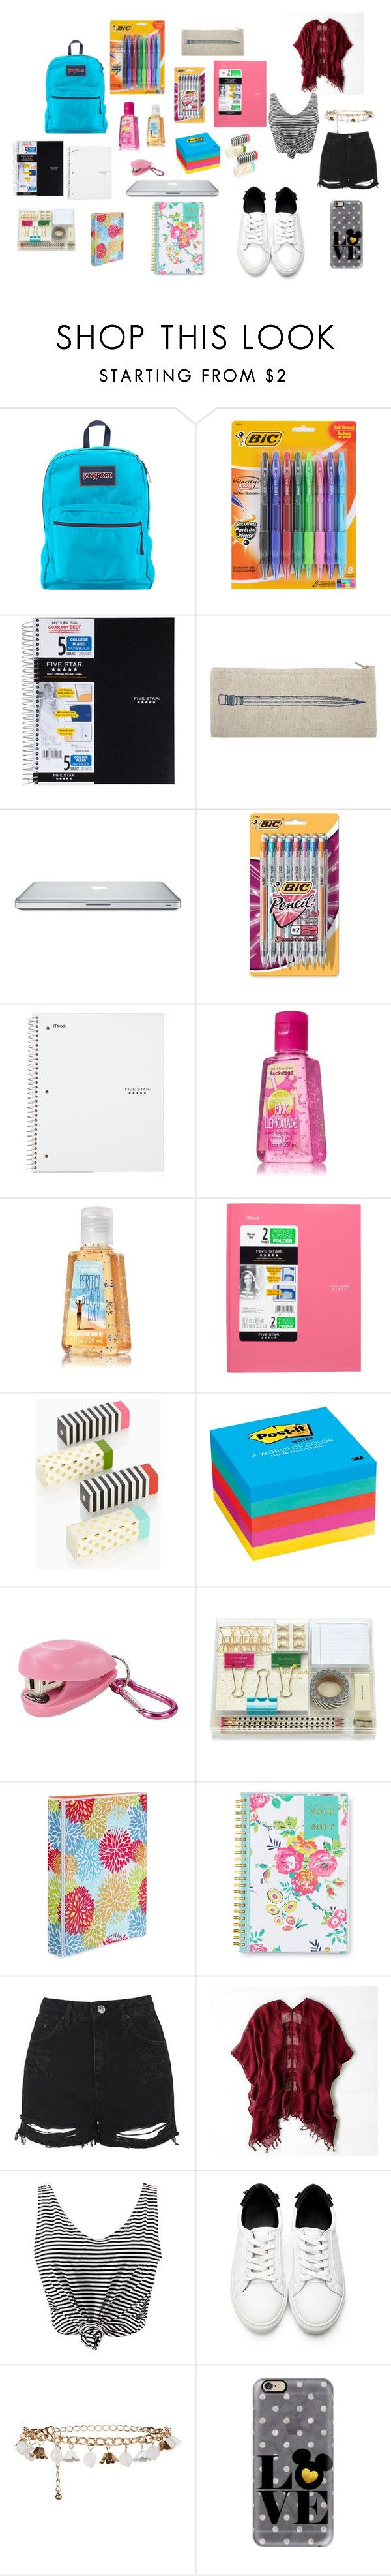 """""""Back To School"""" by avy27 on Polyvore featuring JanSport, Thomaspaul, Mead, Kate Spade, Post-It, Swingline, Avery, Day Designer, Topshop and American Eagle Outfitters"""